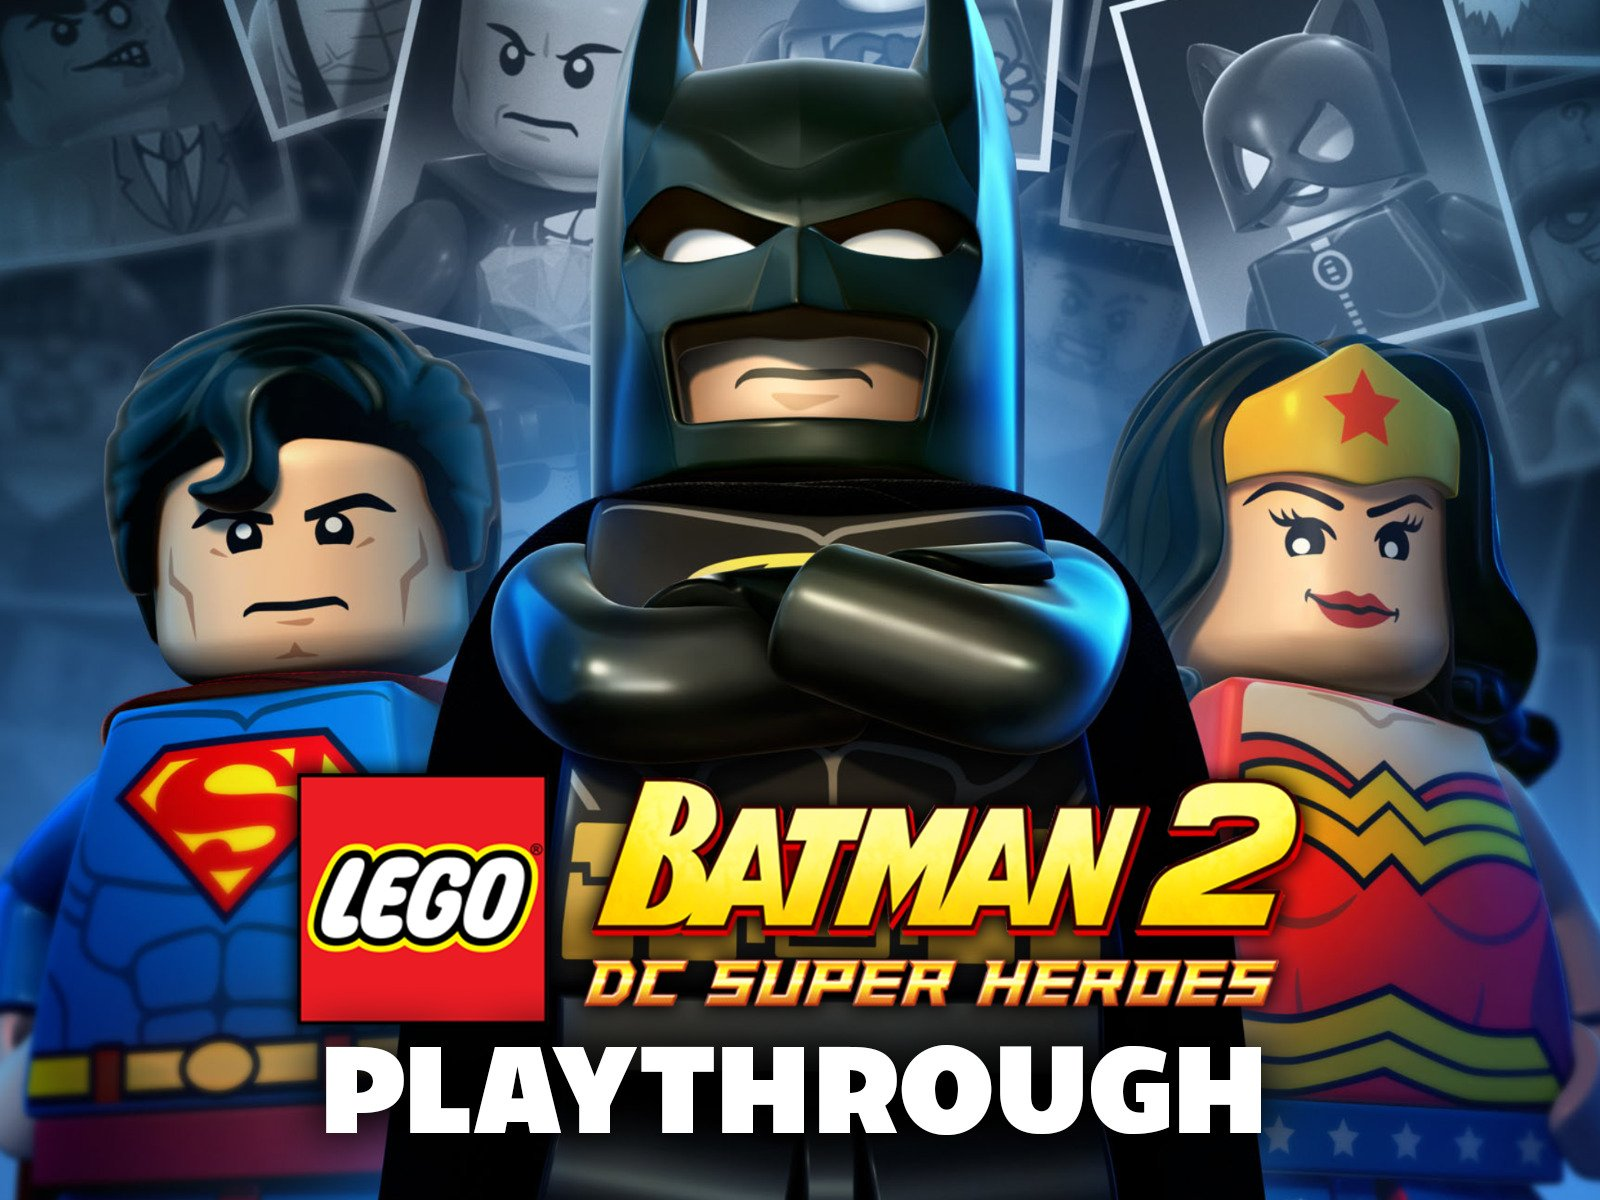 Watch Clip Lego Batman 2 Dc Super Heroes Playthrough Prime Video